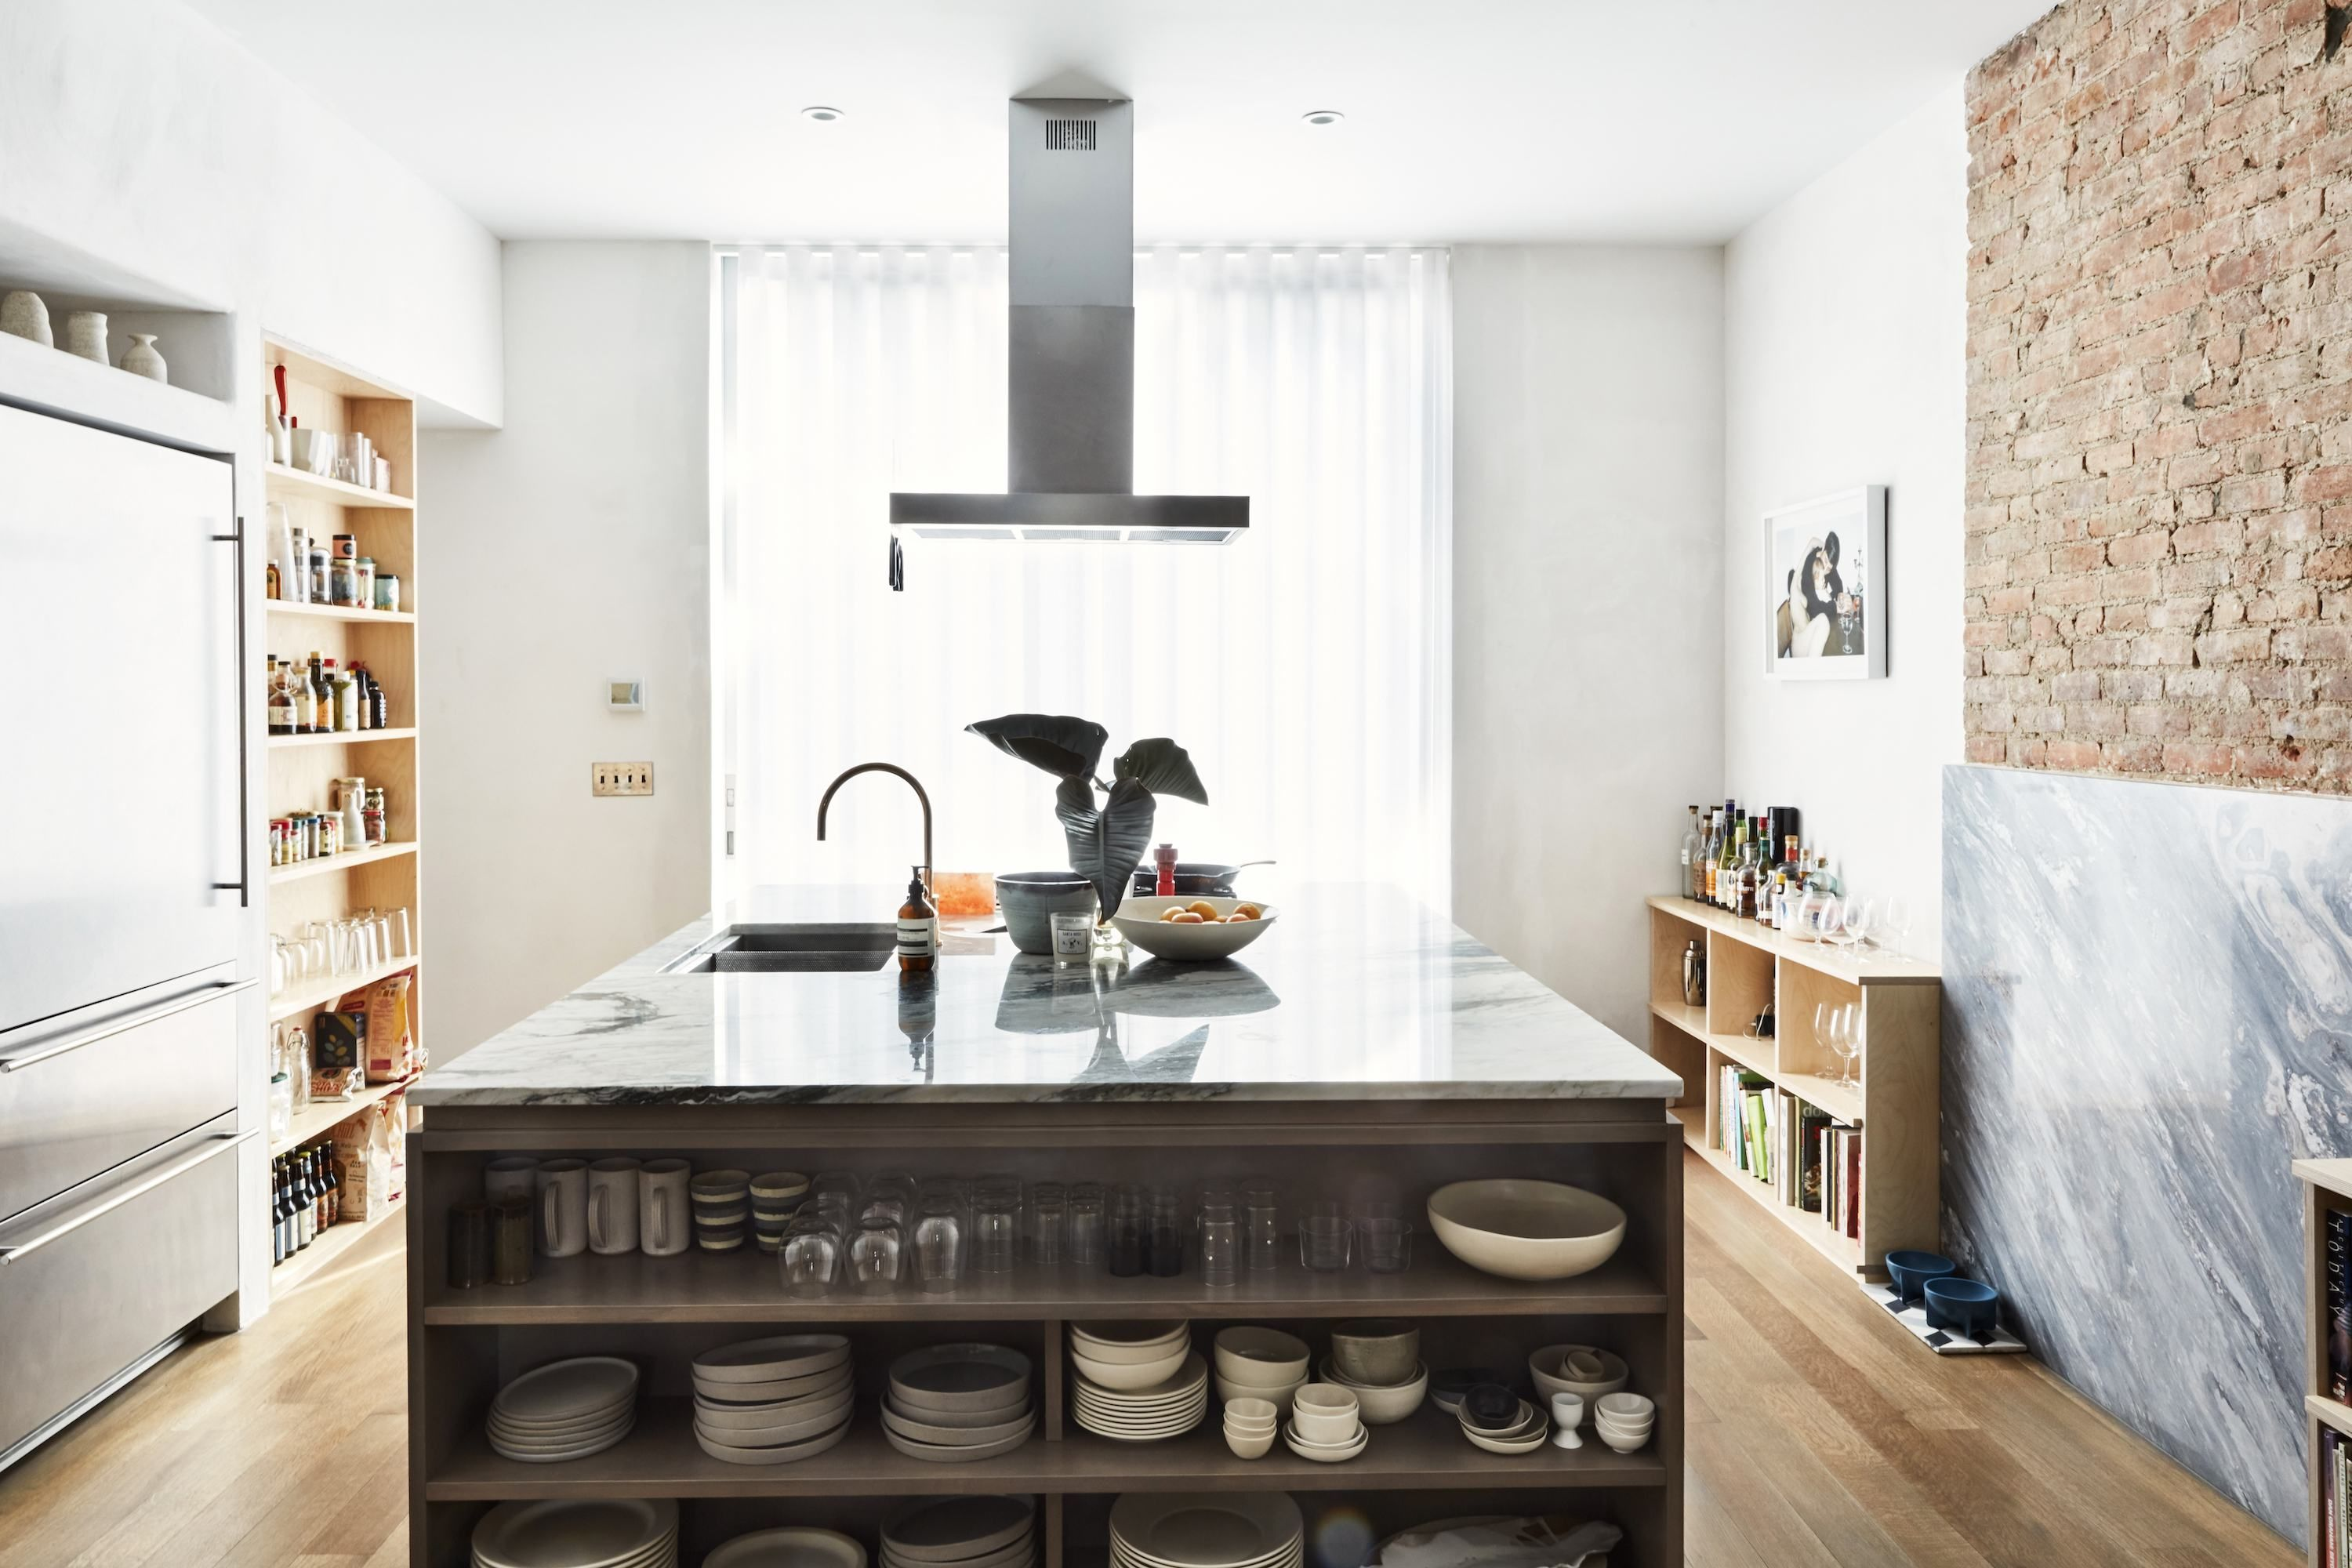 In Bed Stuy Brooklyn A Renovated Brownstone With Inspired Solutions Remodelista Kitchen Remodel Kitchen Layout Kitchen Interior